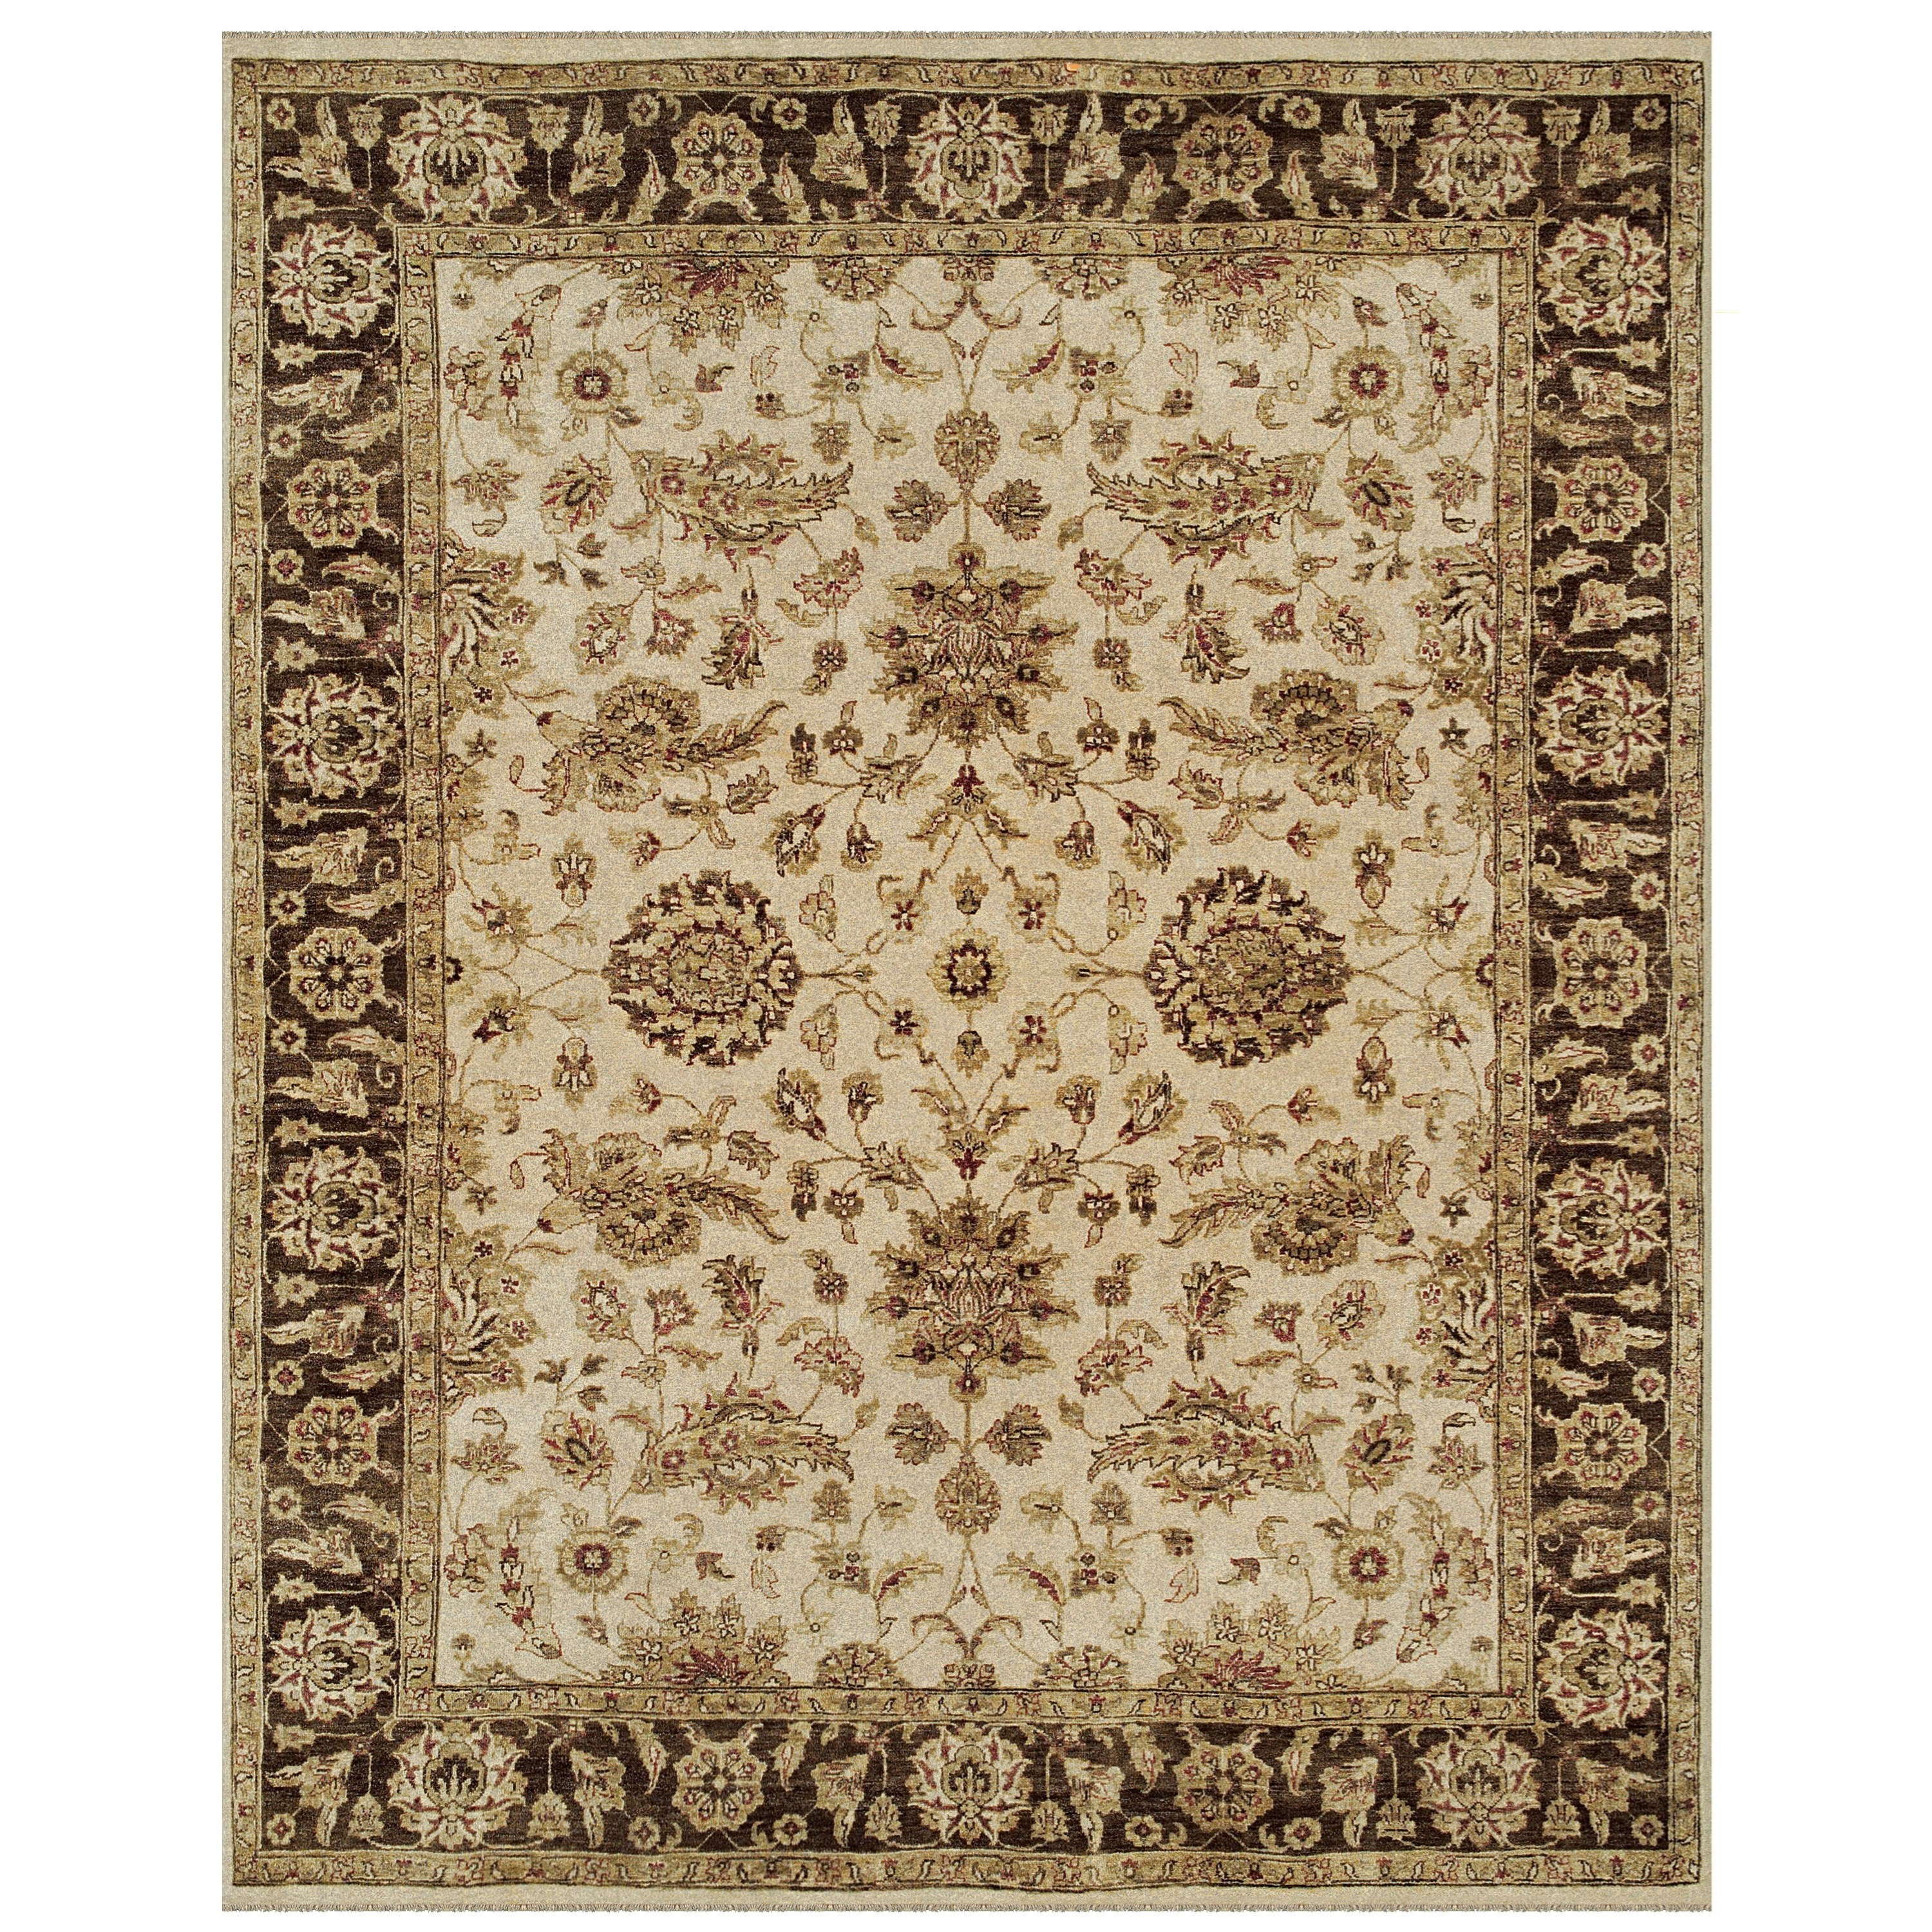 Drake Ivory/Brown 2' x 3' Area Rug by Feizy Rugs at Jacksonville Furniture Mart